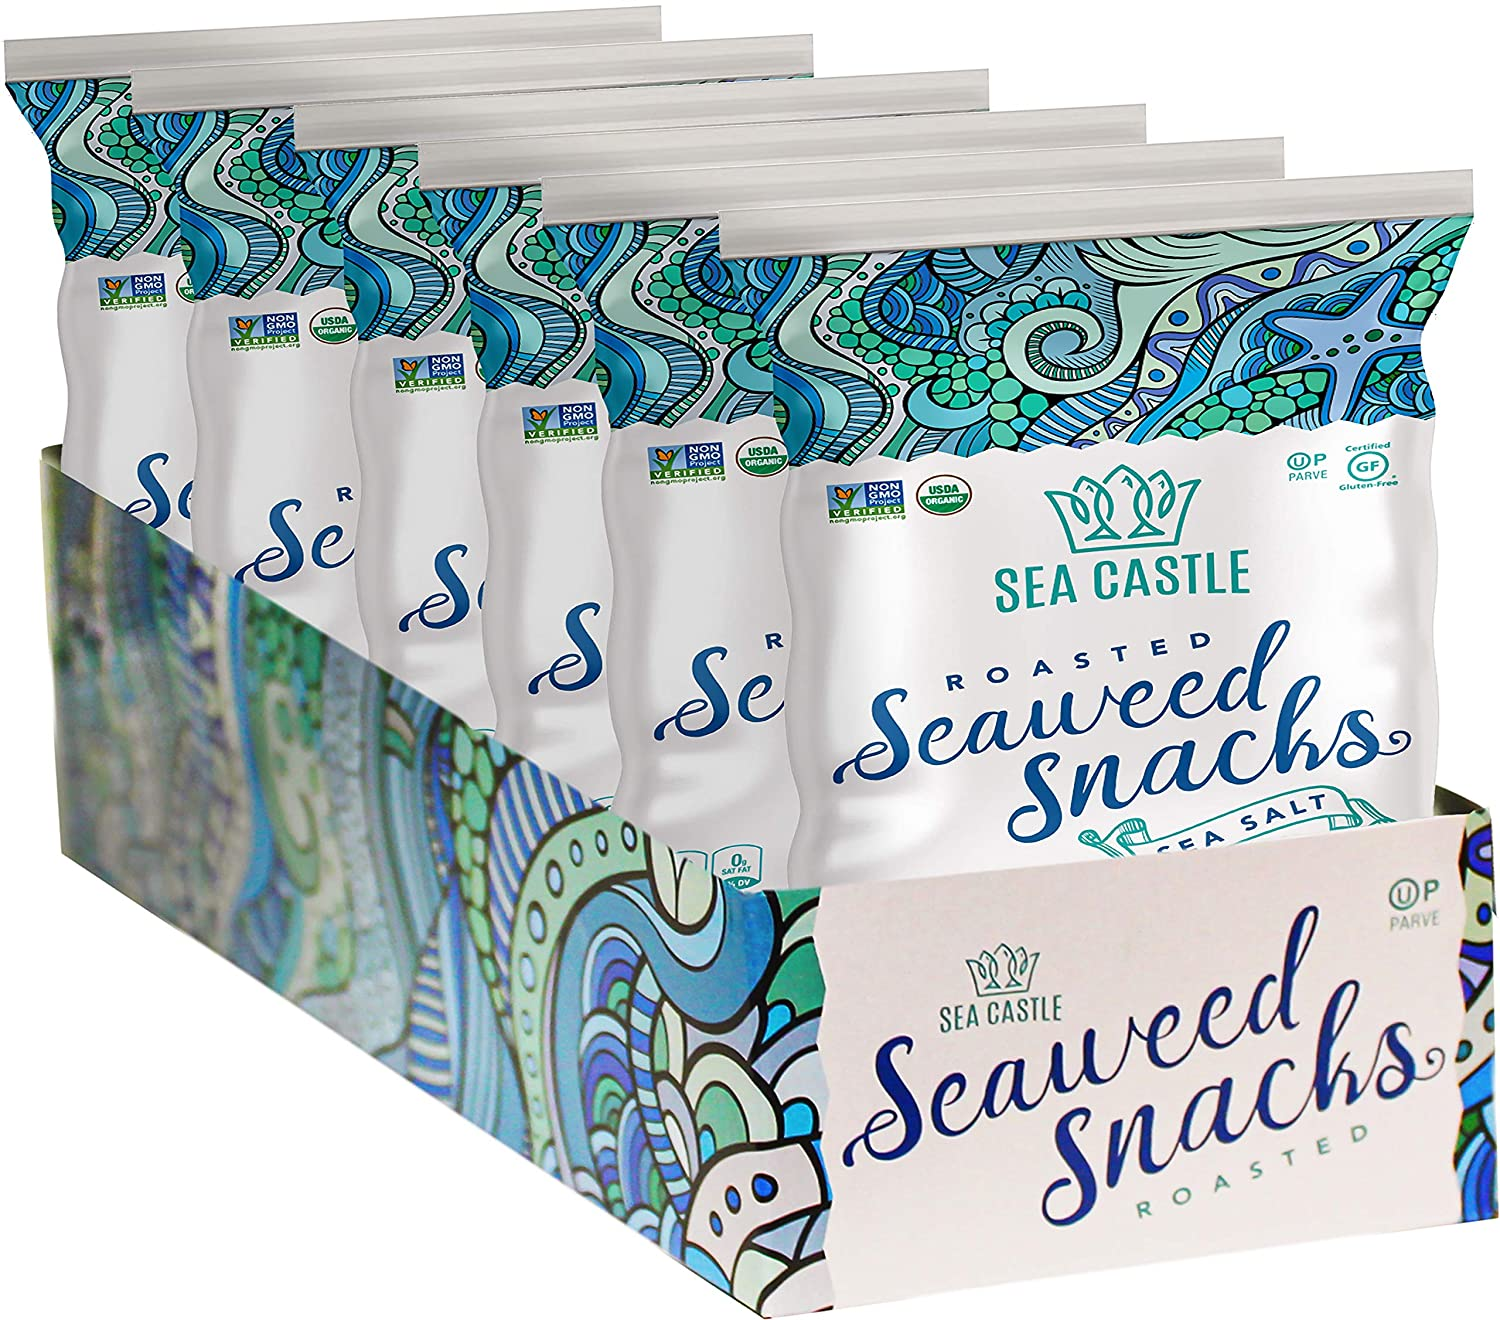 Sea Castle Organic Roasted Seaweed .35 Oz. Snack Mesa Opening large release sale Mall Salt with